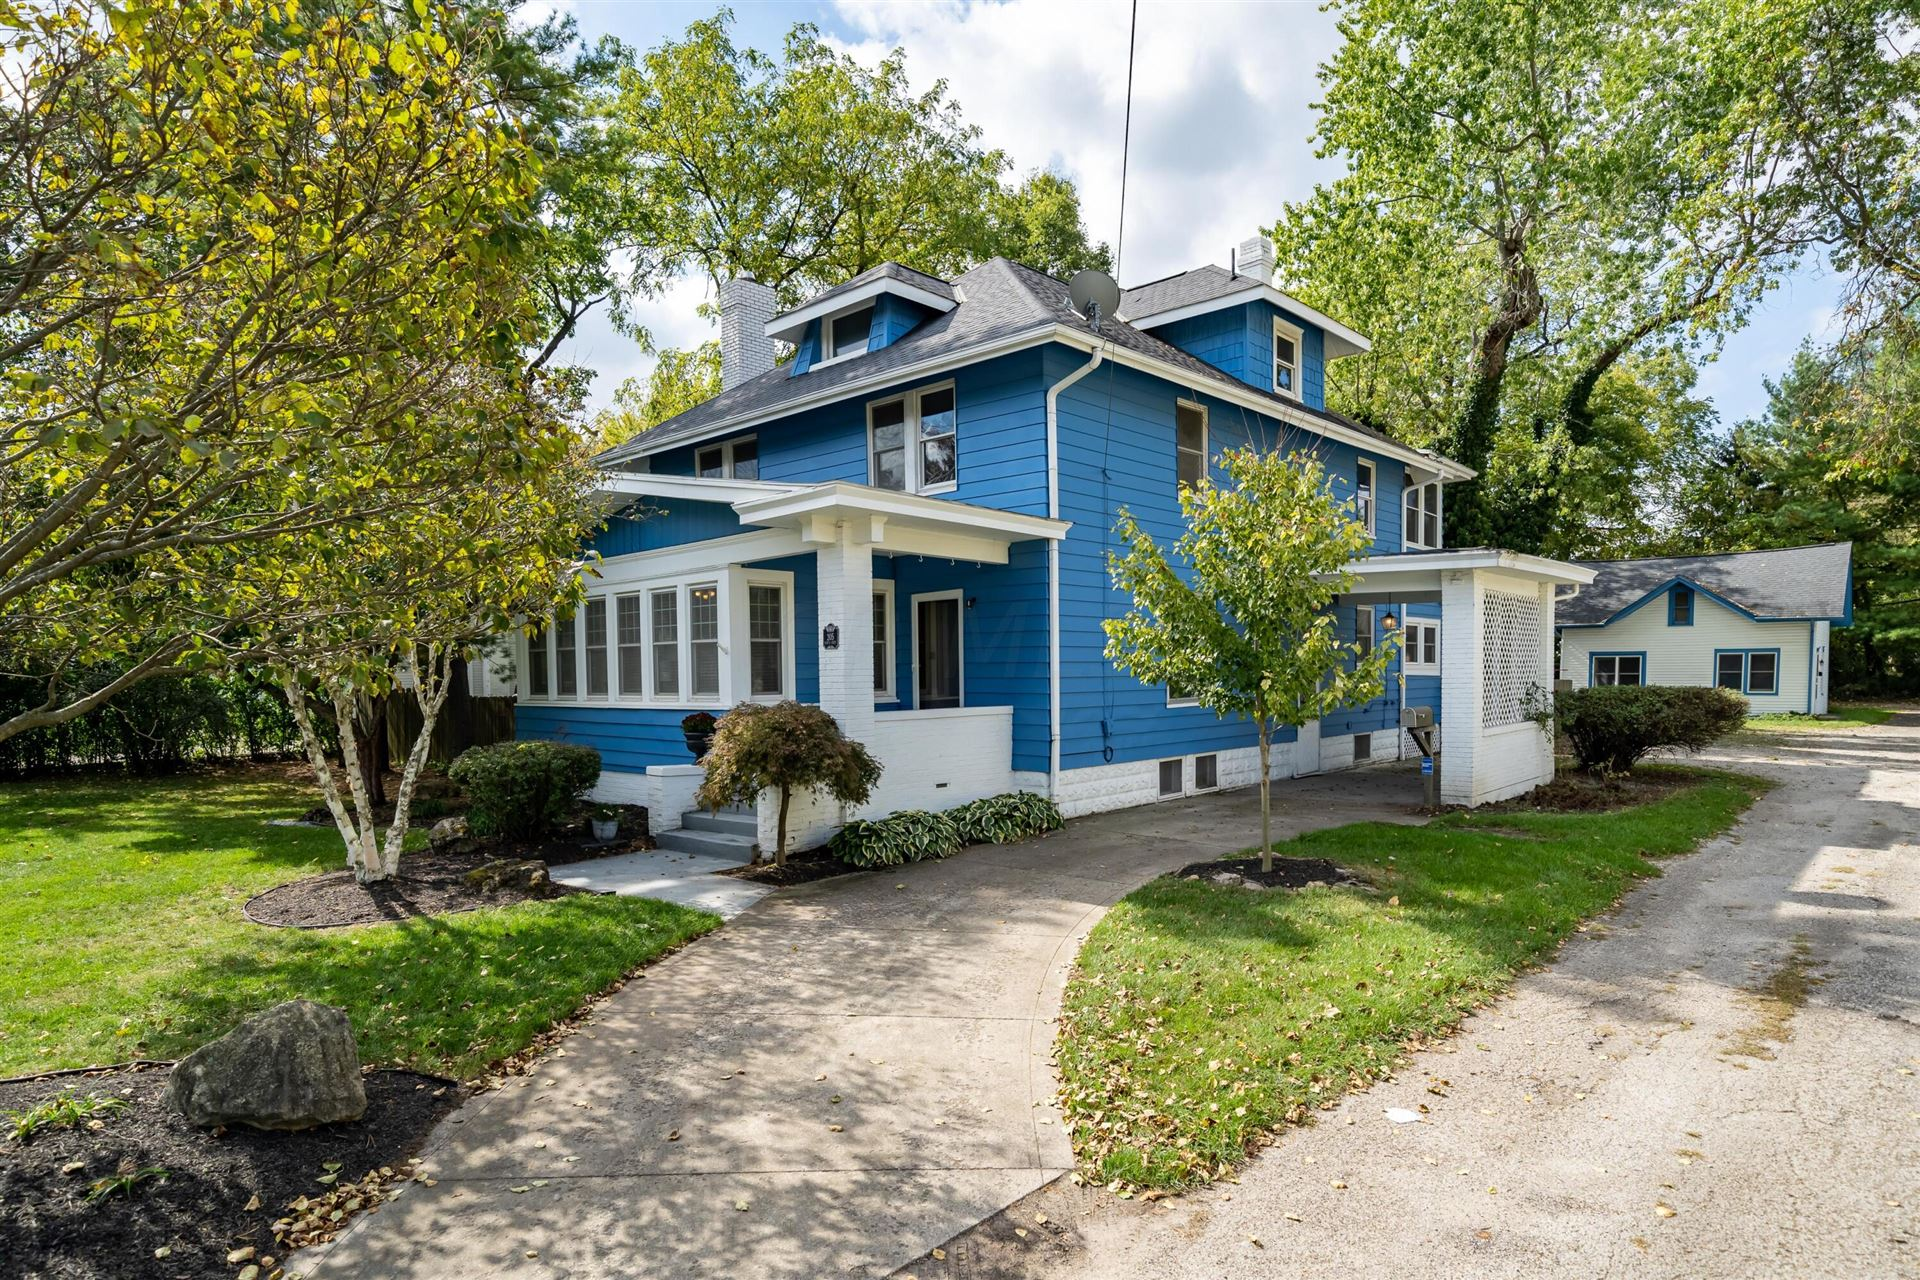 Photo of 205 N State Street, Westerville, OH 43081 (MLS # 221040990)